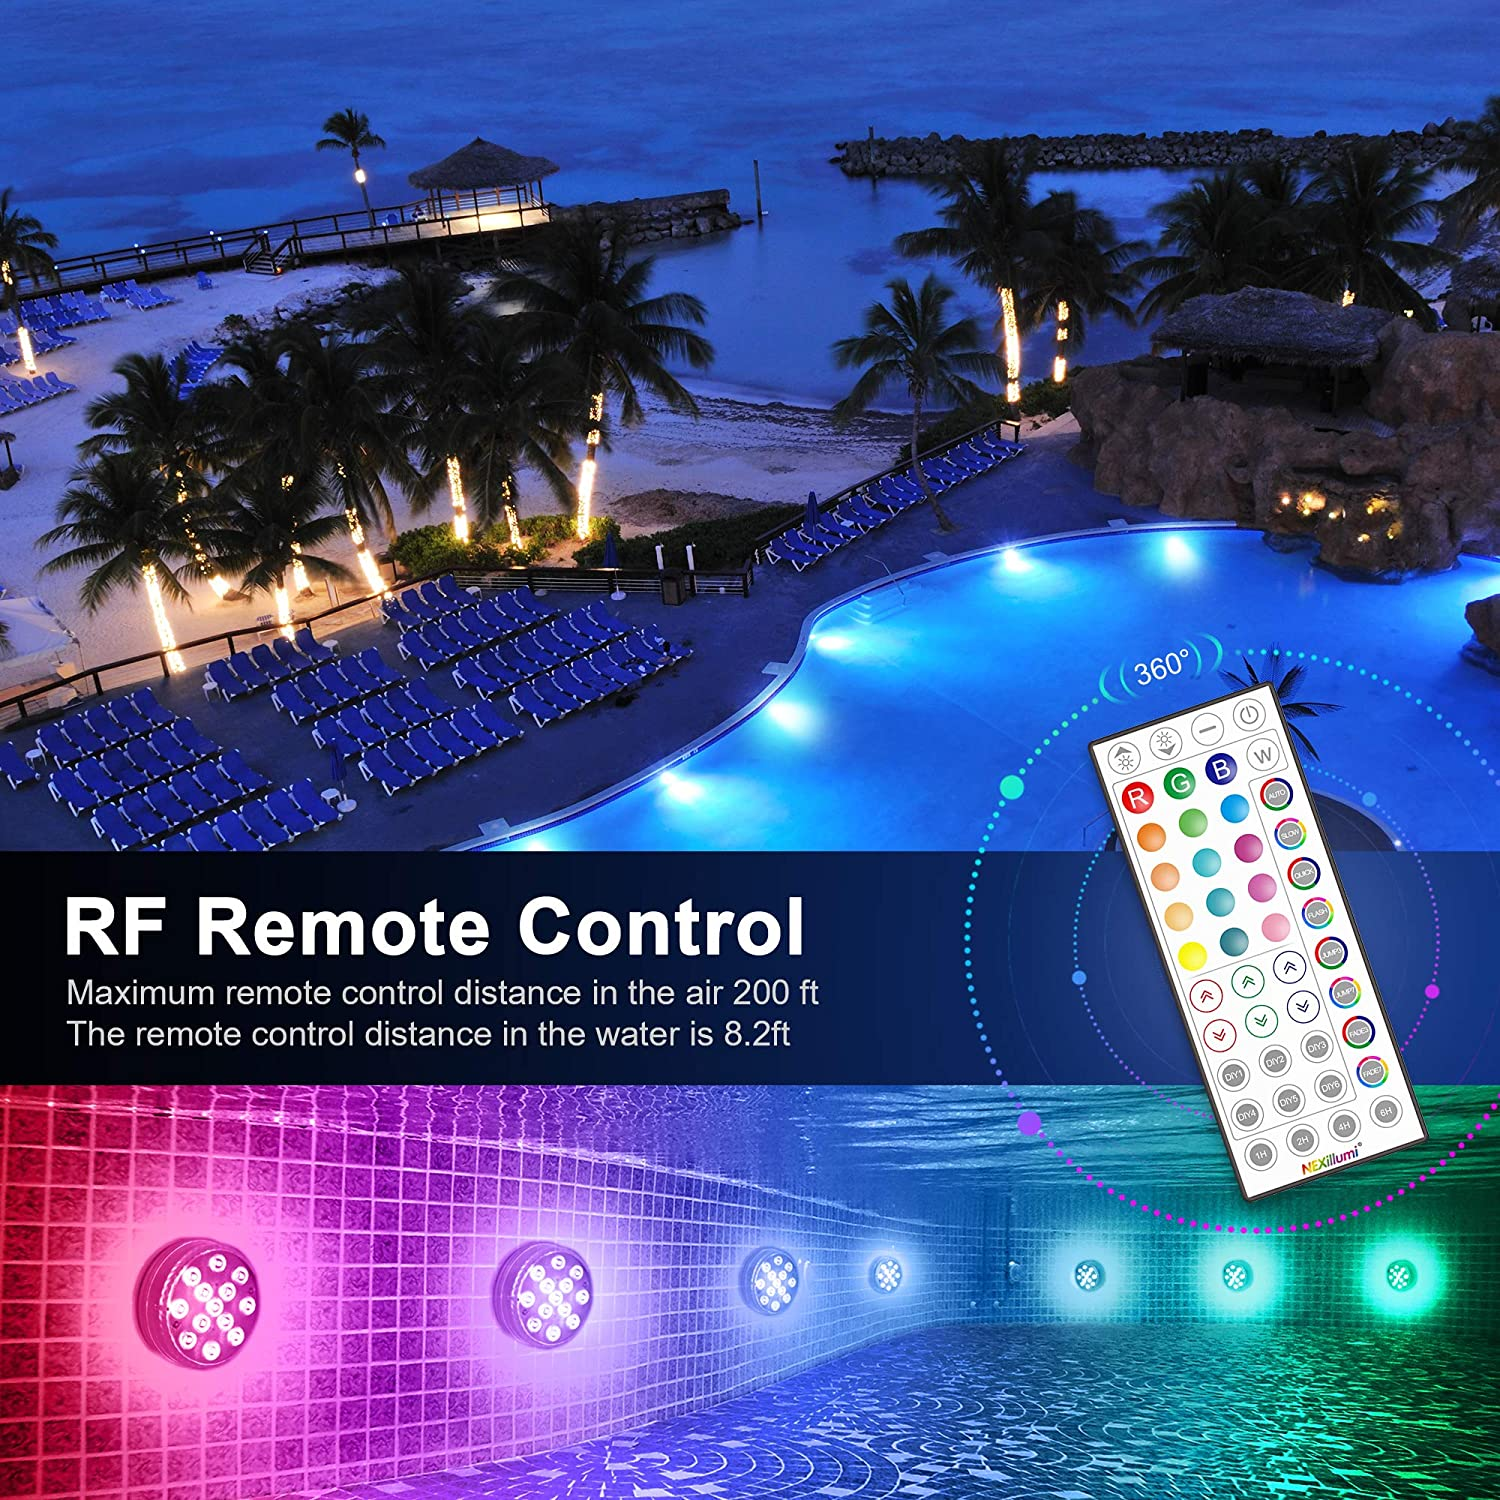 IP68 waterproof 16 Million Colors SMD 5050 LED swimming pool lights for inground pool parties 2Pack fish tanks patios vases Upgraded Submersible Pool Lights with 44-Key RF remote and App control